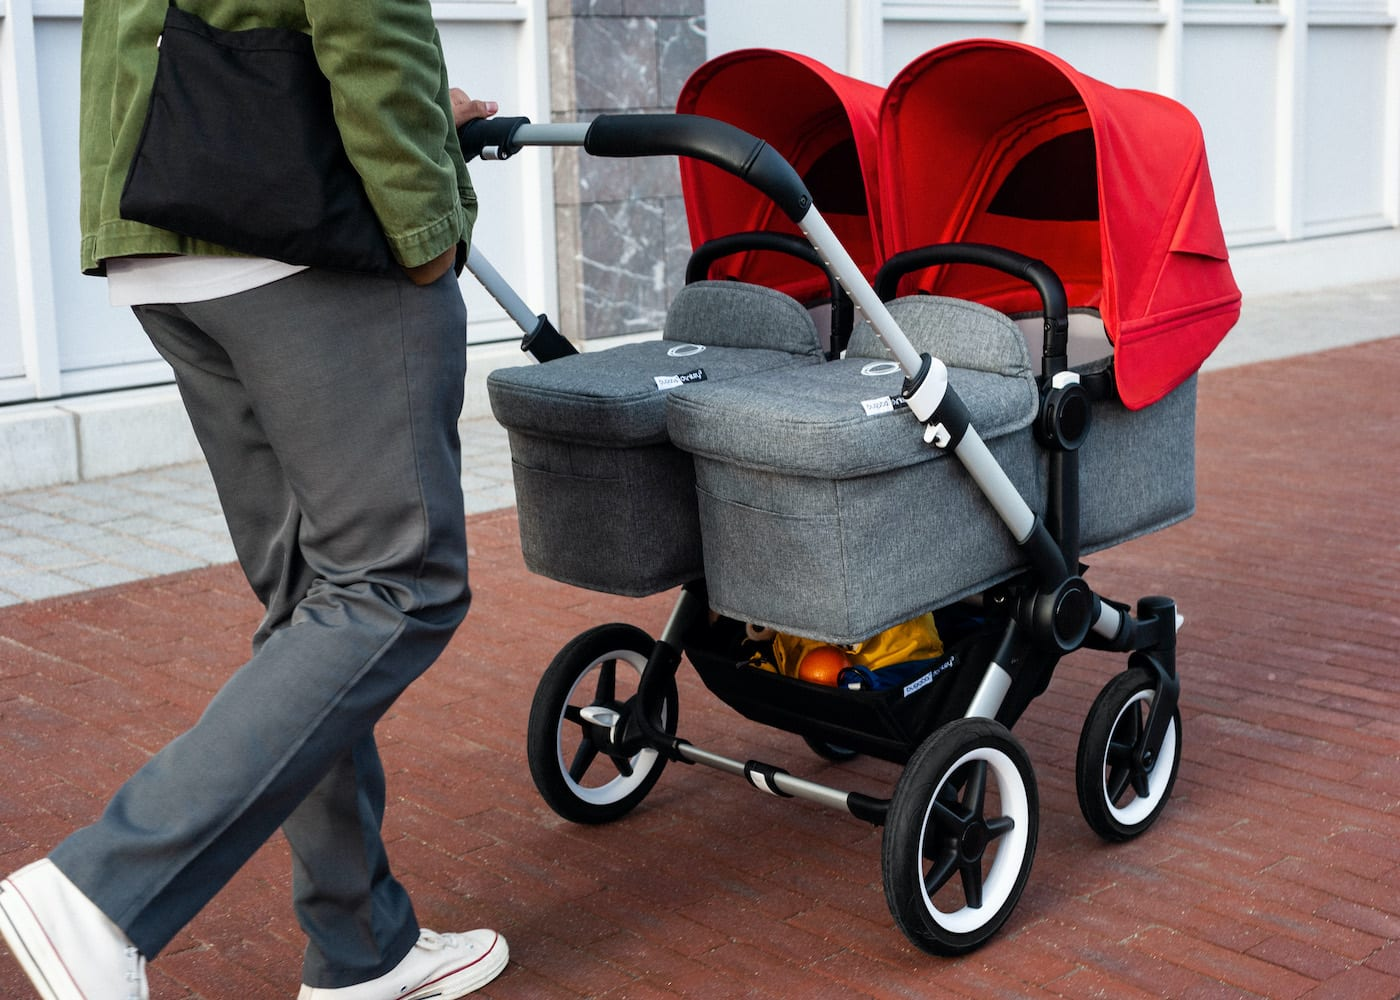 Bugaboo Donkey3: The stroller that grows with your family